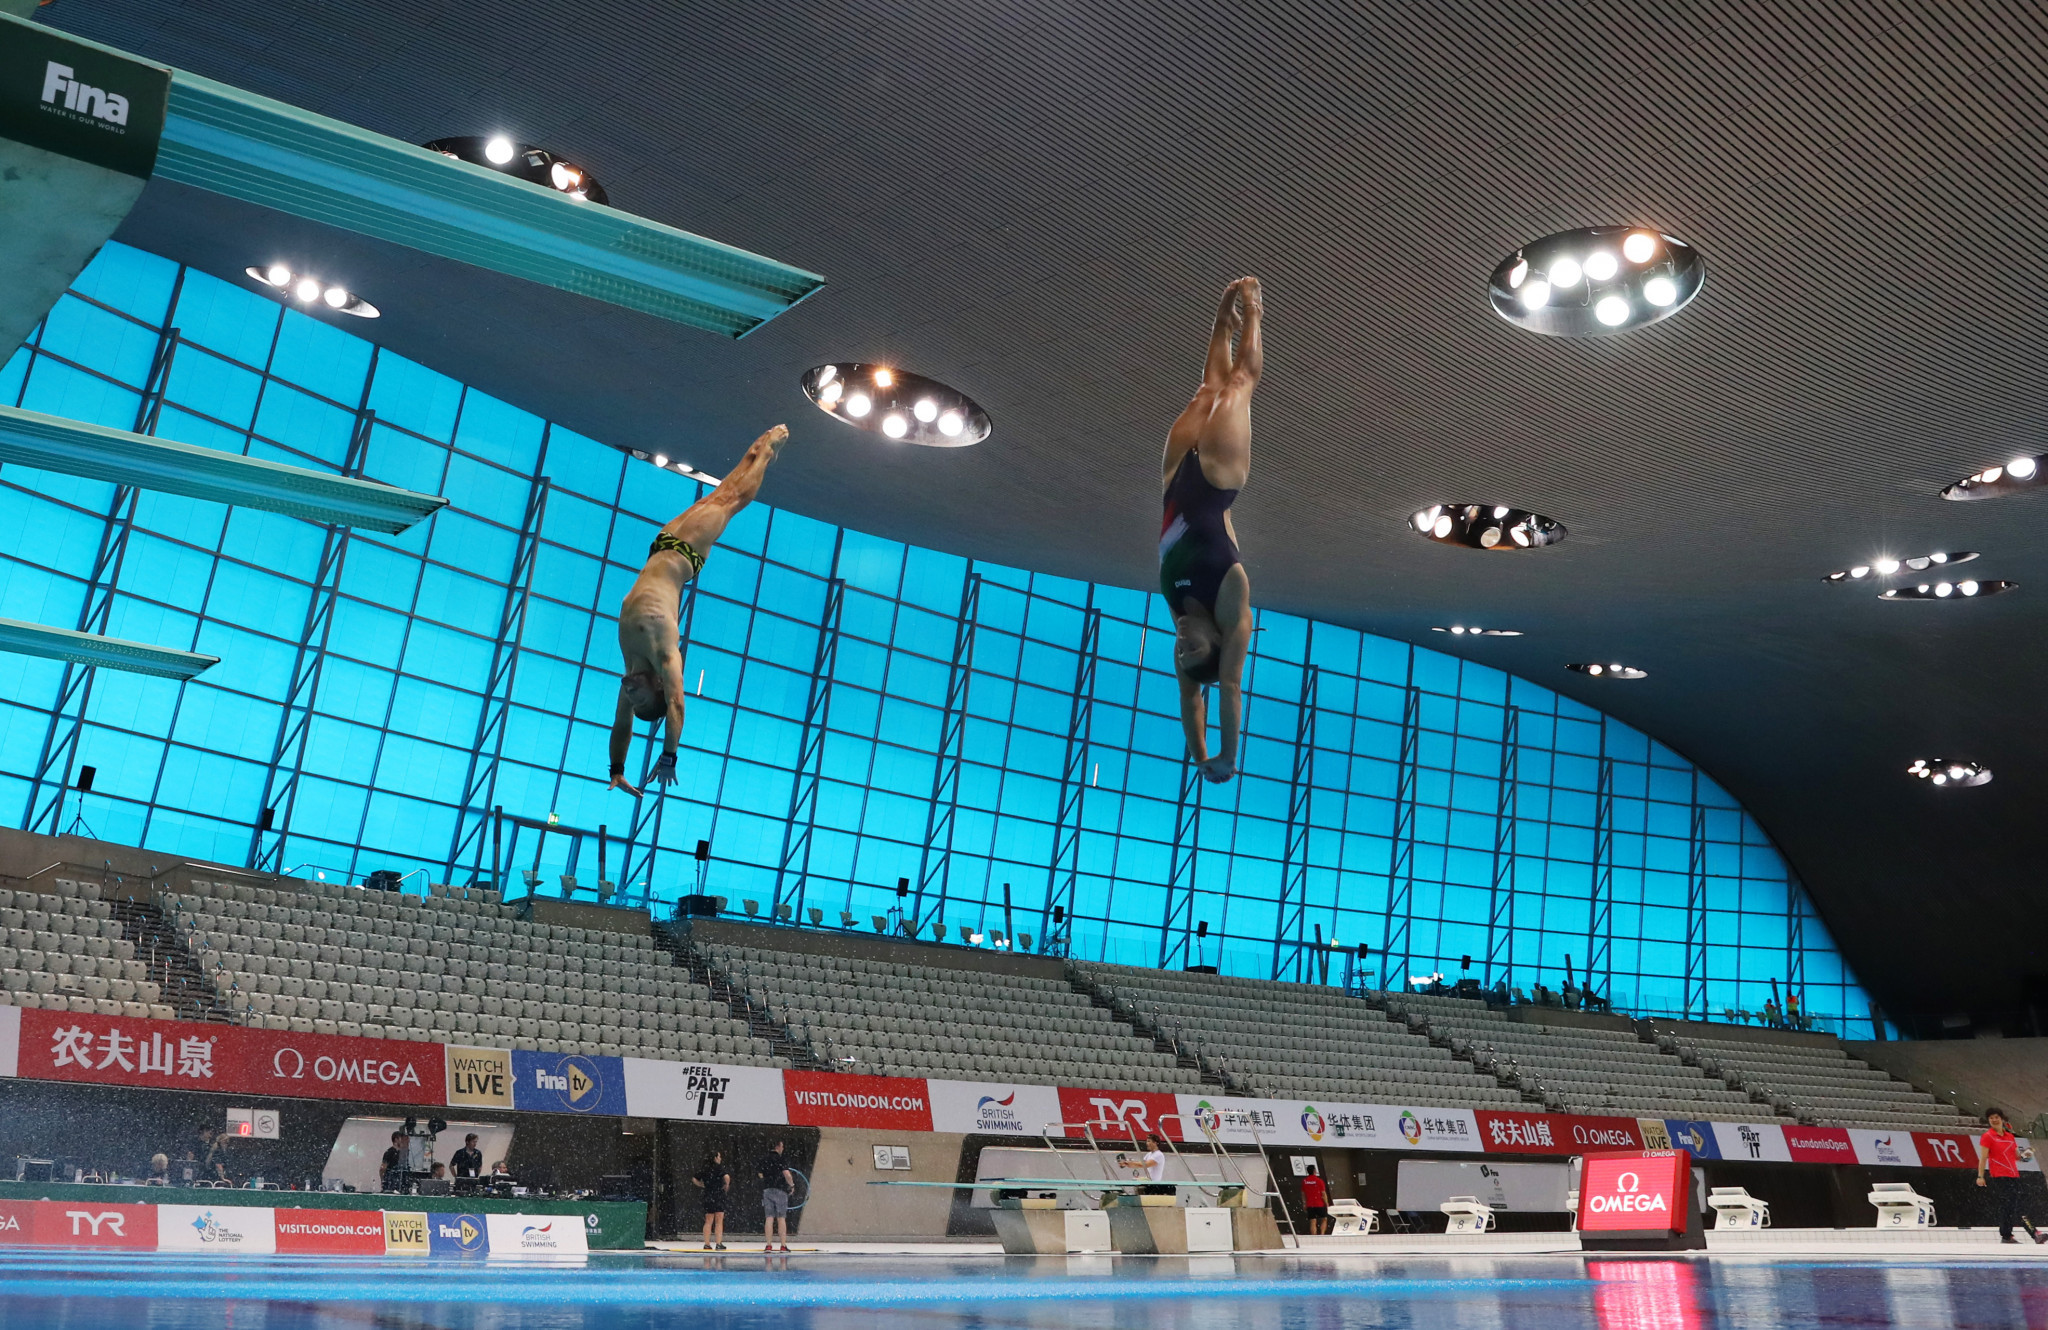 London Aquatics Centre staged the three-day International Swimming Federation's Diving World Series in May ©Getty Images